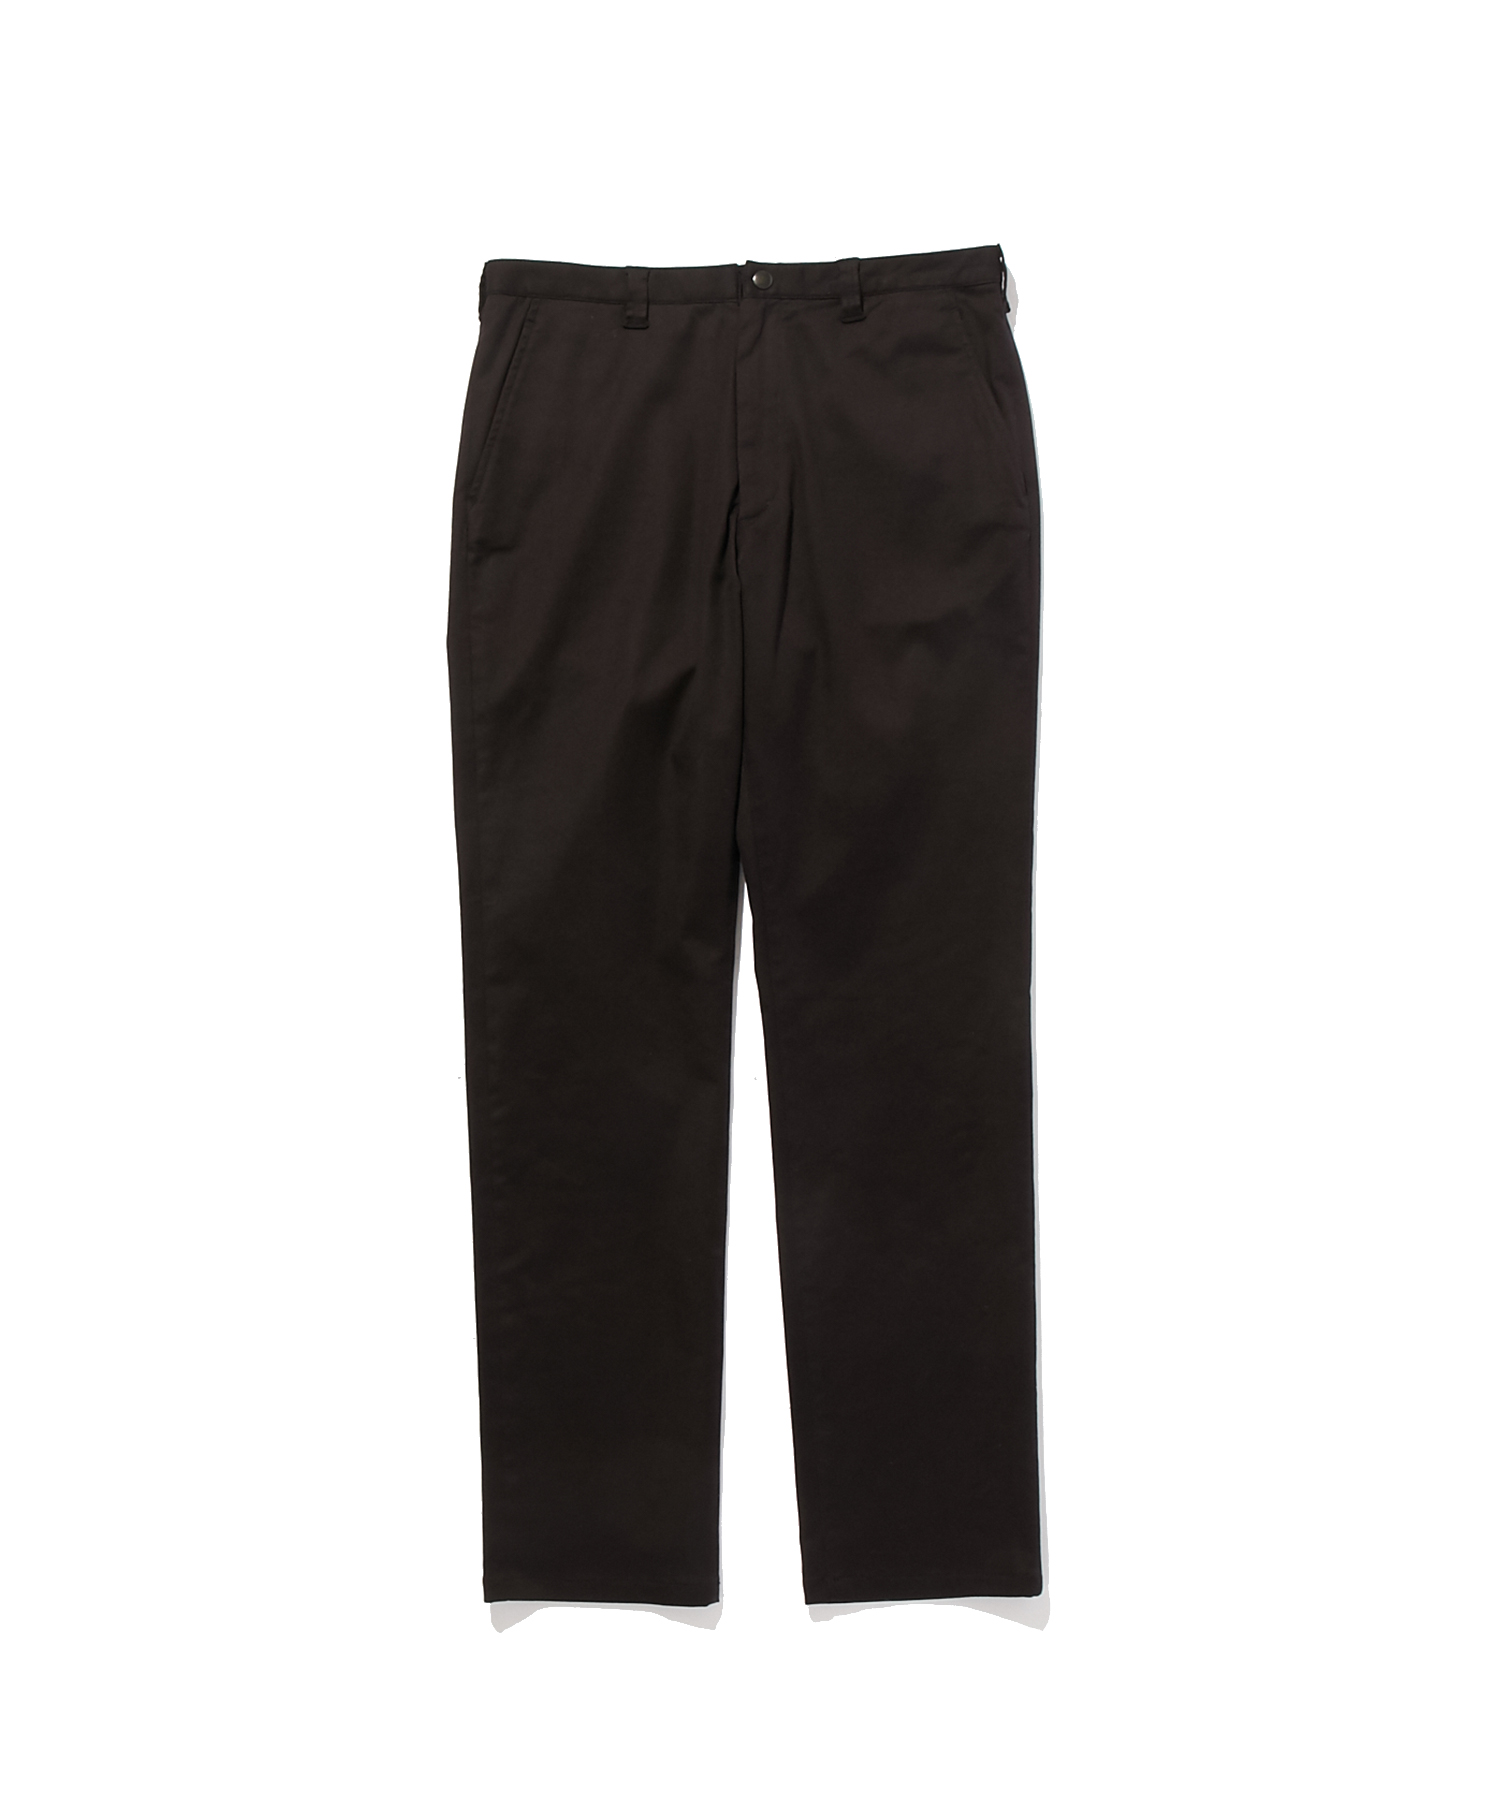 FALL2019 SLIM TAPERED PANTS